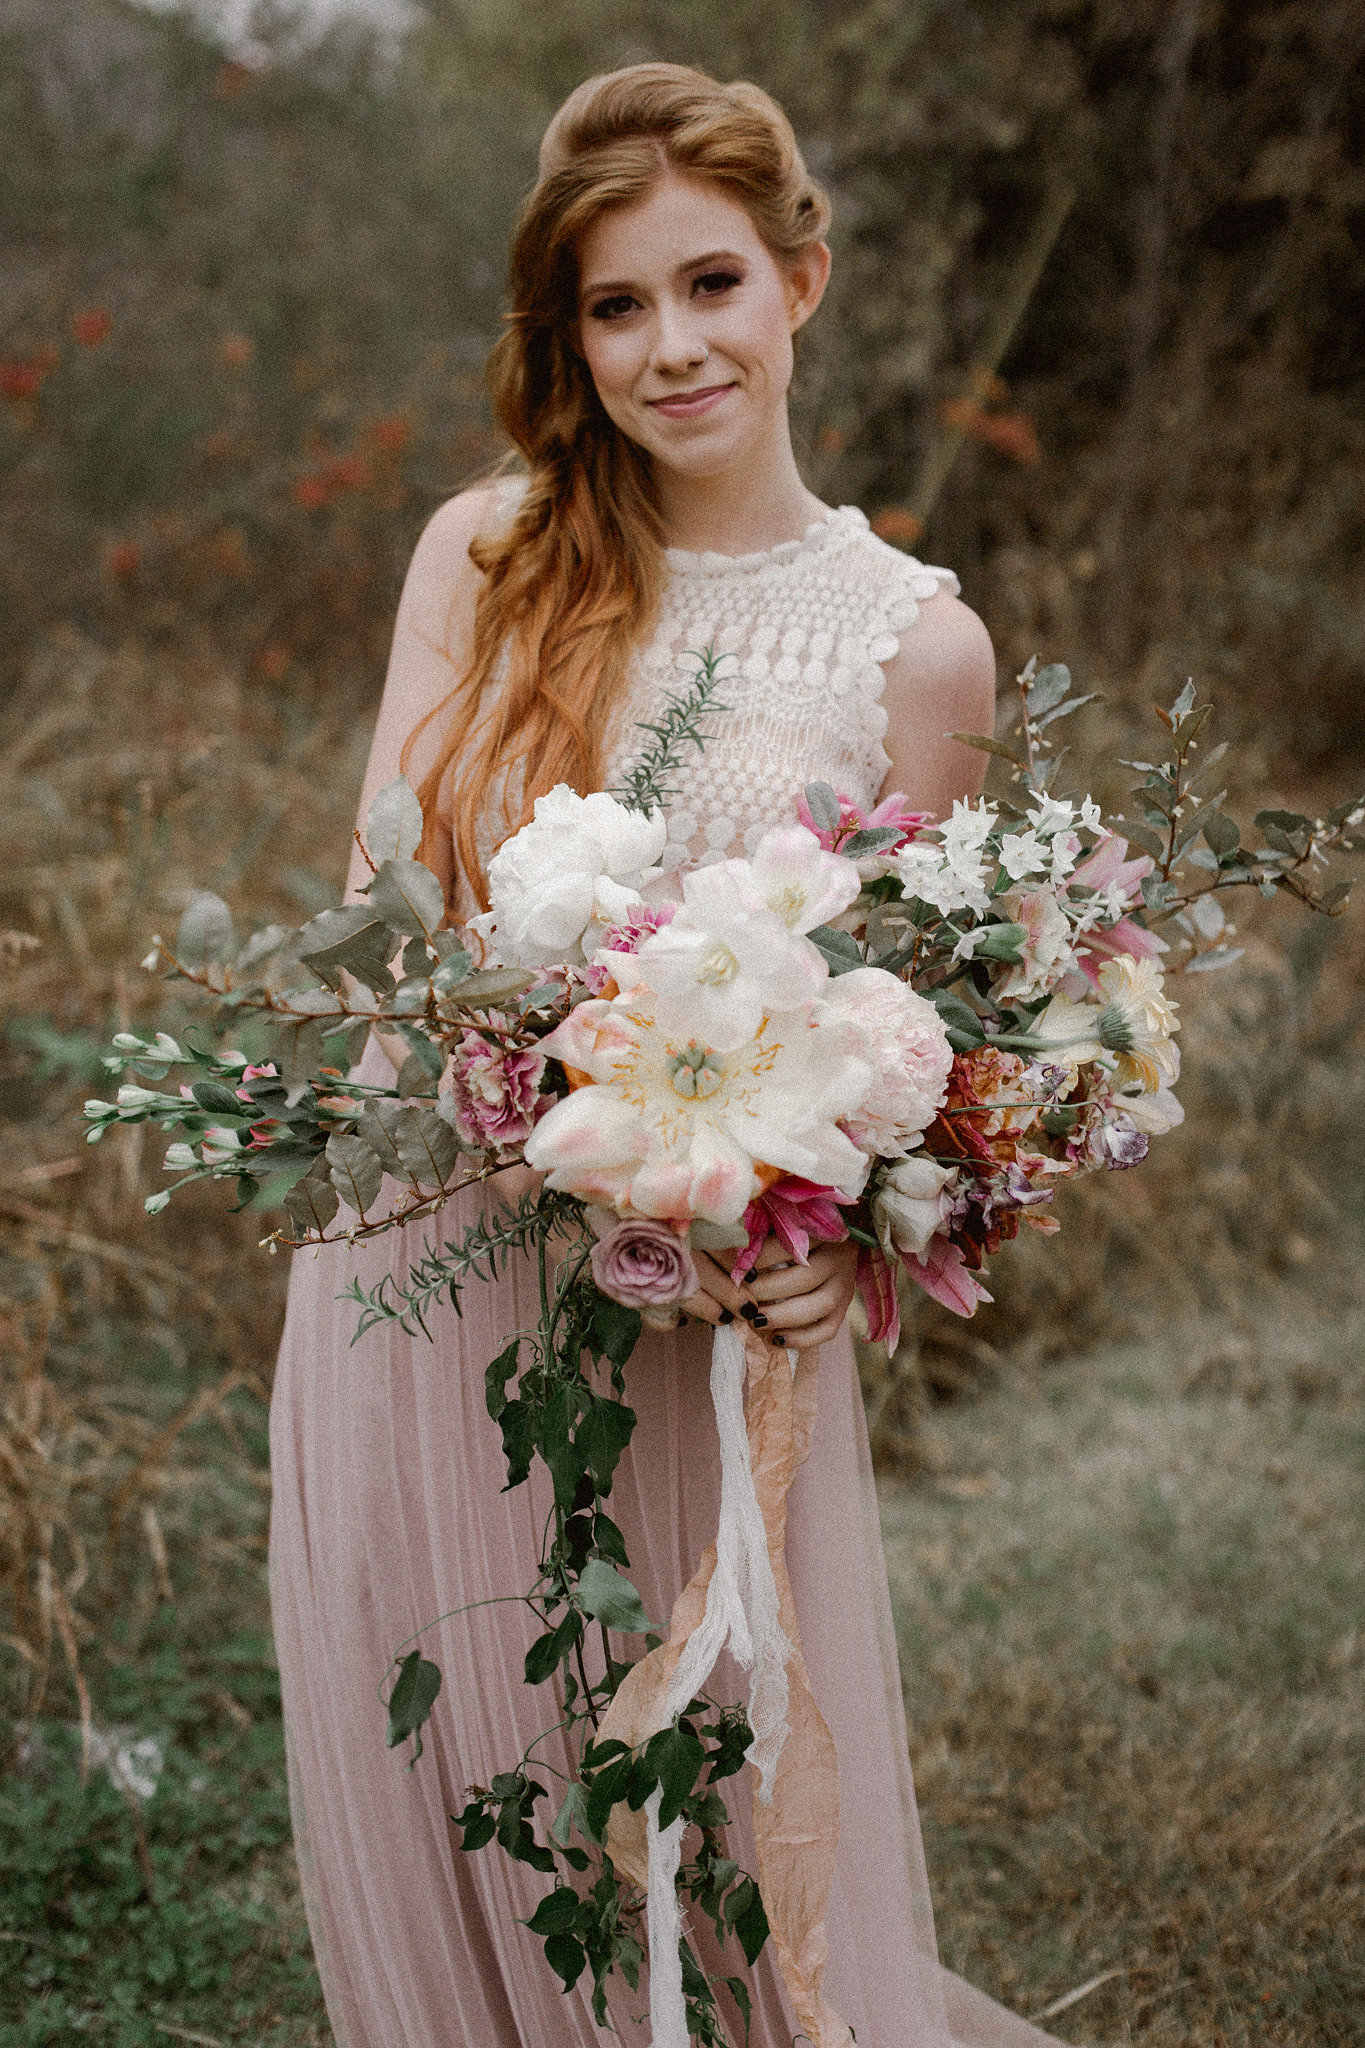 Romantic Free Bridal half up half down hairstyle + makeup | College Station hair + makeup artist Naturally Flawless | Bryan, Texas | Pink + Purple + Vintage + Romantic + Blush + outdoors + portrait + rustic | Wedding Coordinator Epoch Co+